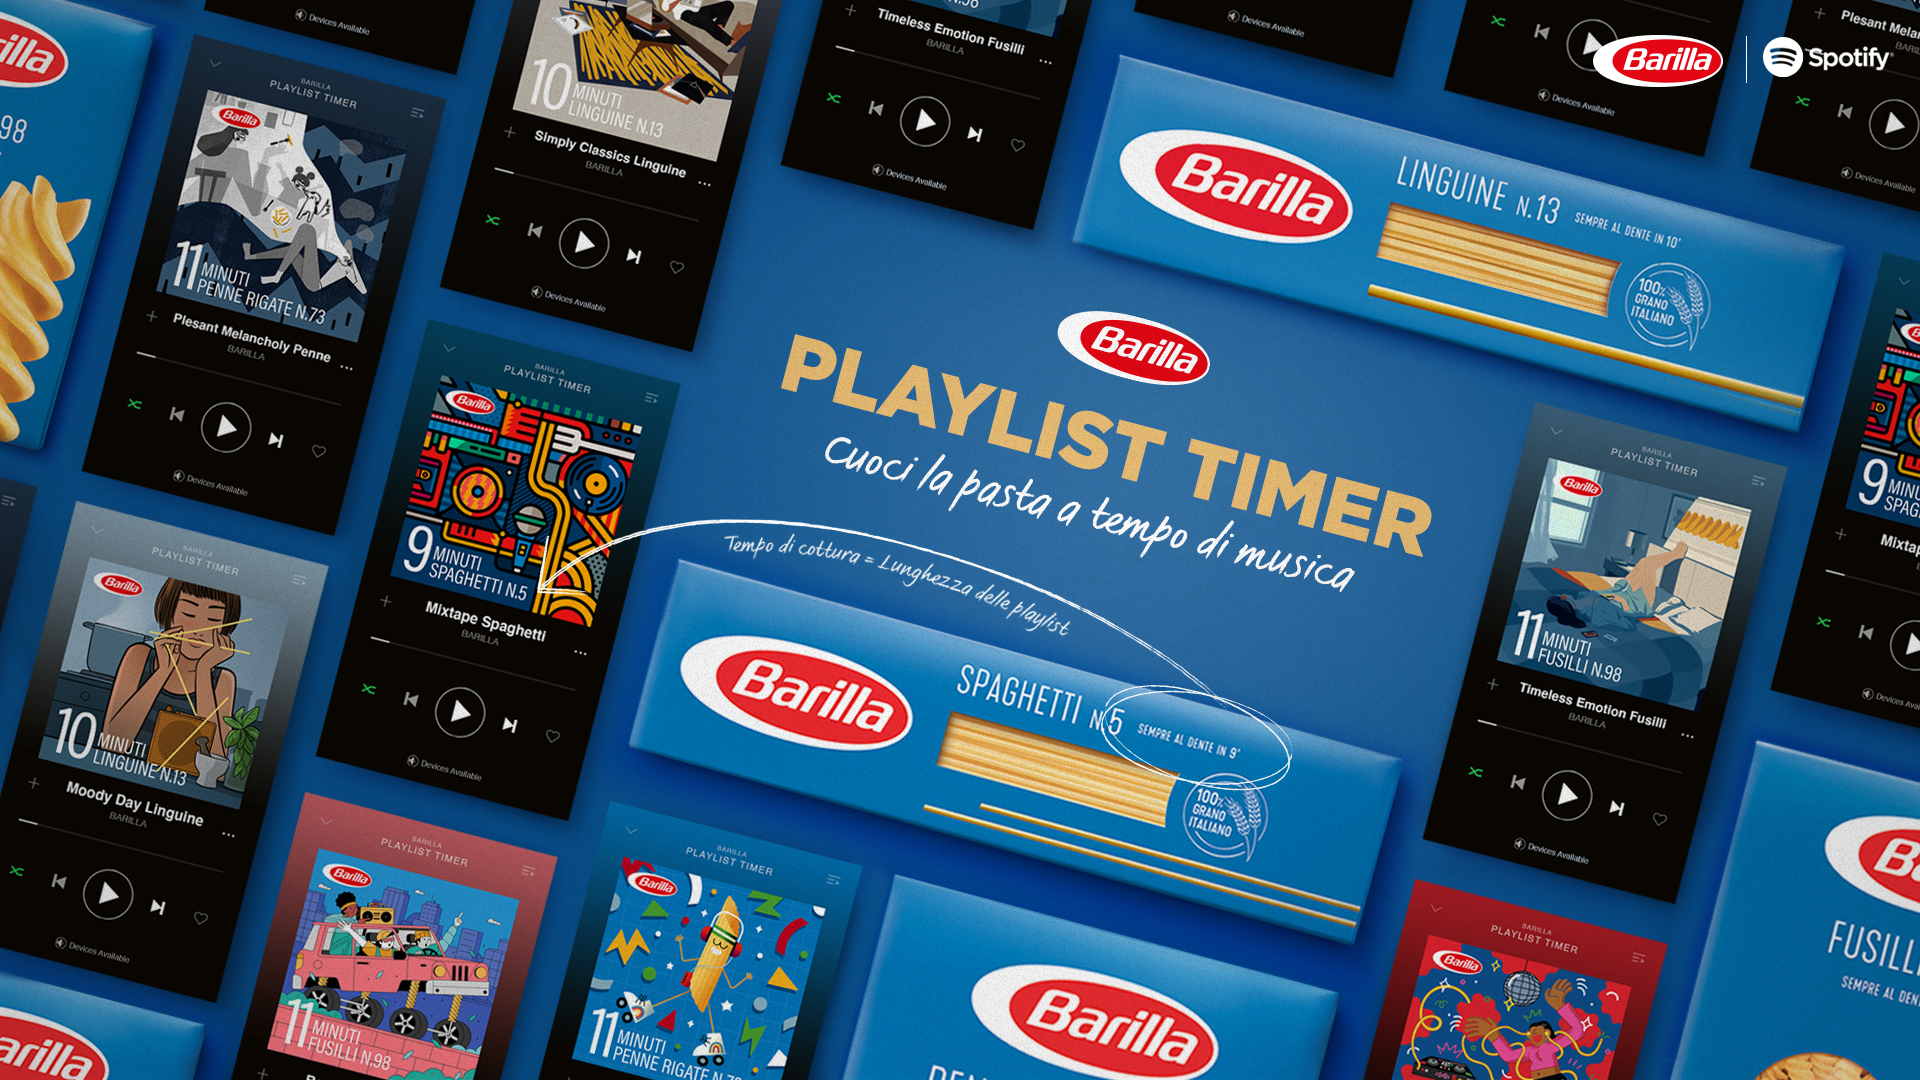 Kohls Radio 2021 Christmas Playlist Barilla Launches Playlist Timer On Spotify To Perfectly Cook Pasta In Time To Music Adstasher